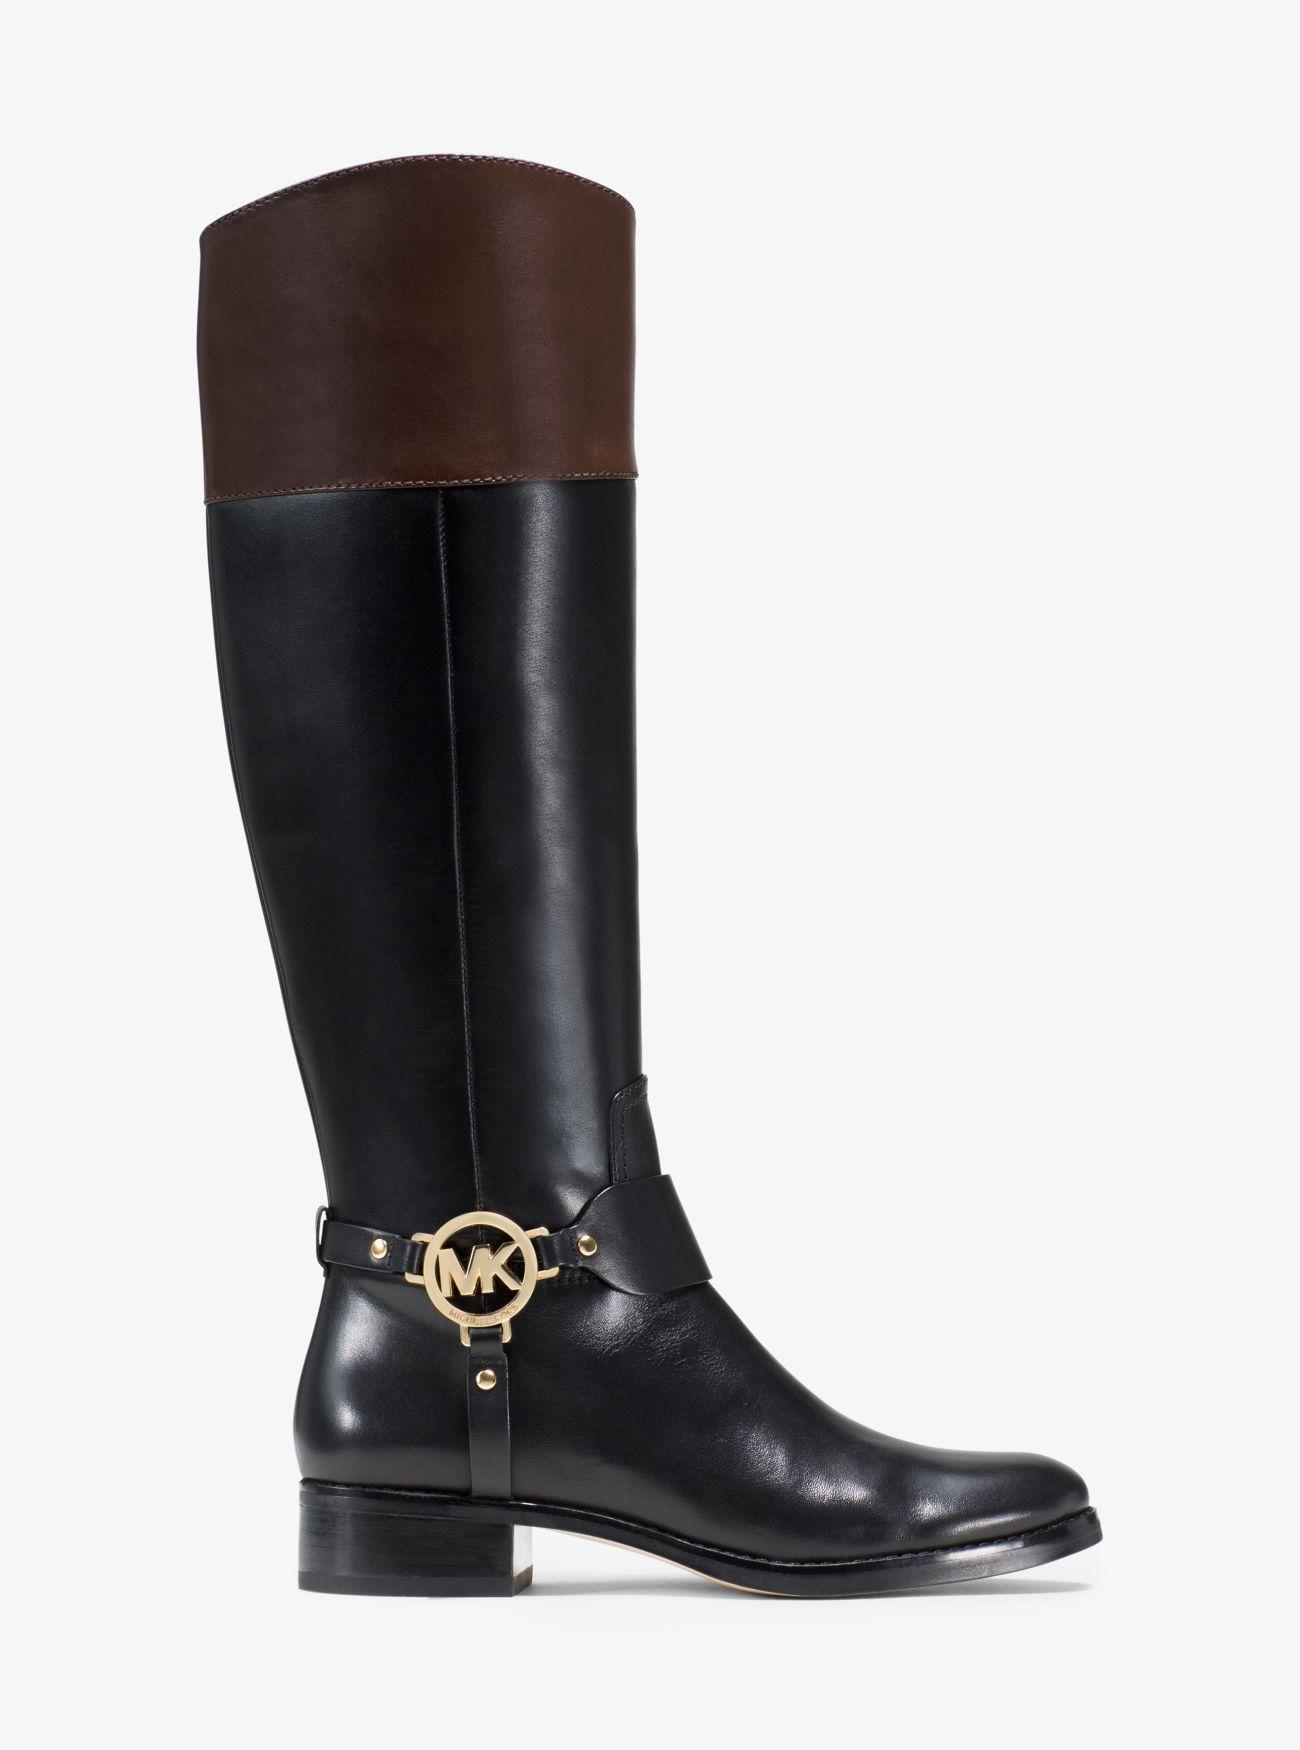 Michael Kors Fulton Leather Riding Boot in Black